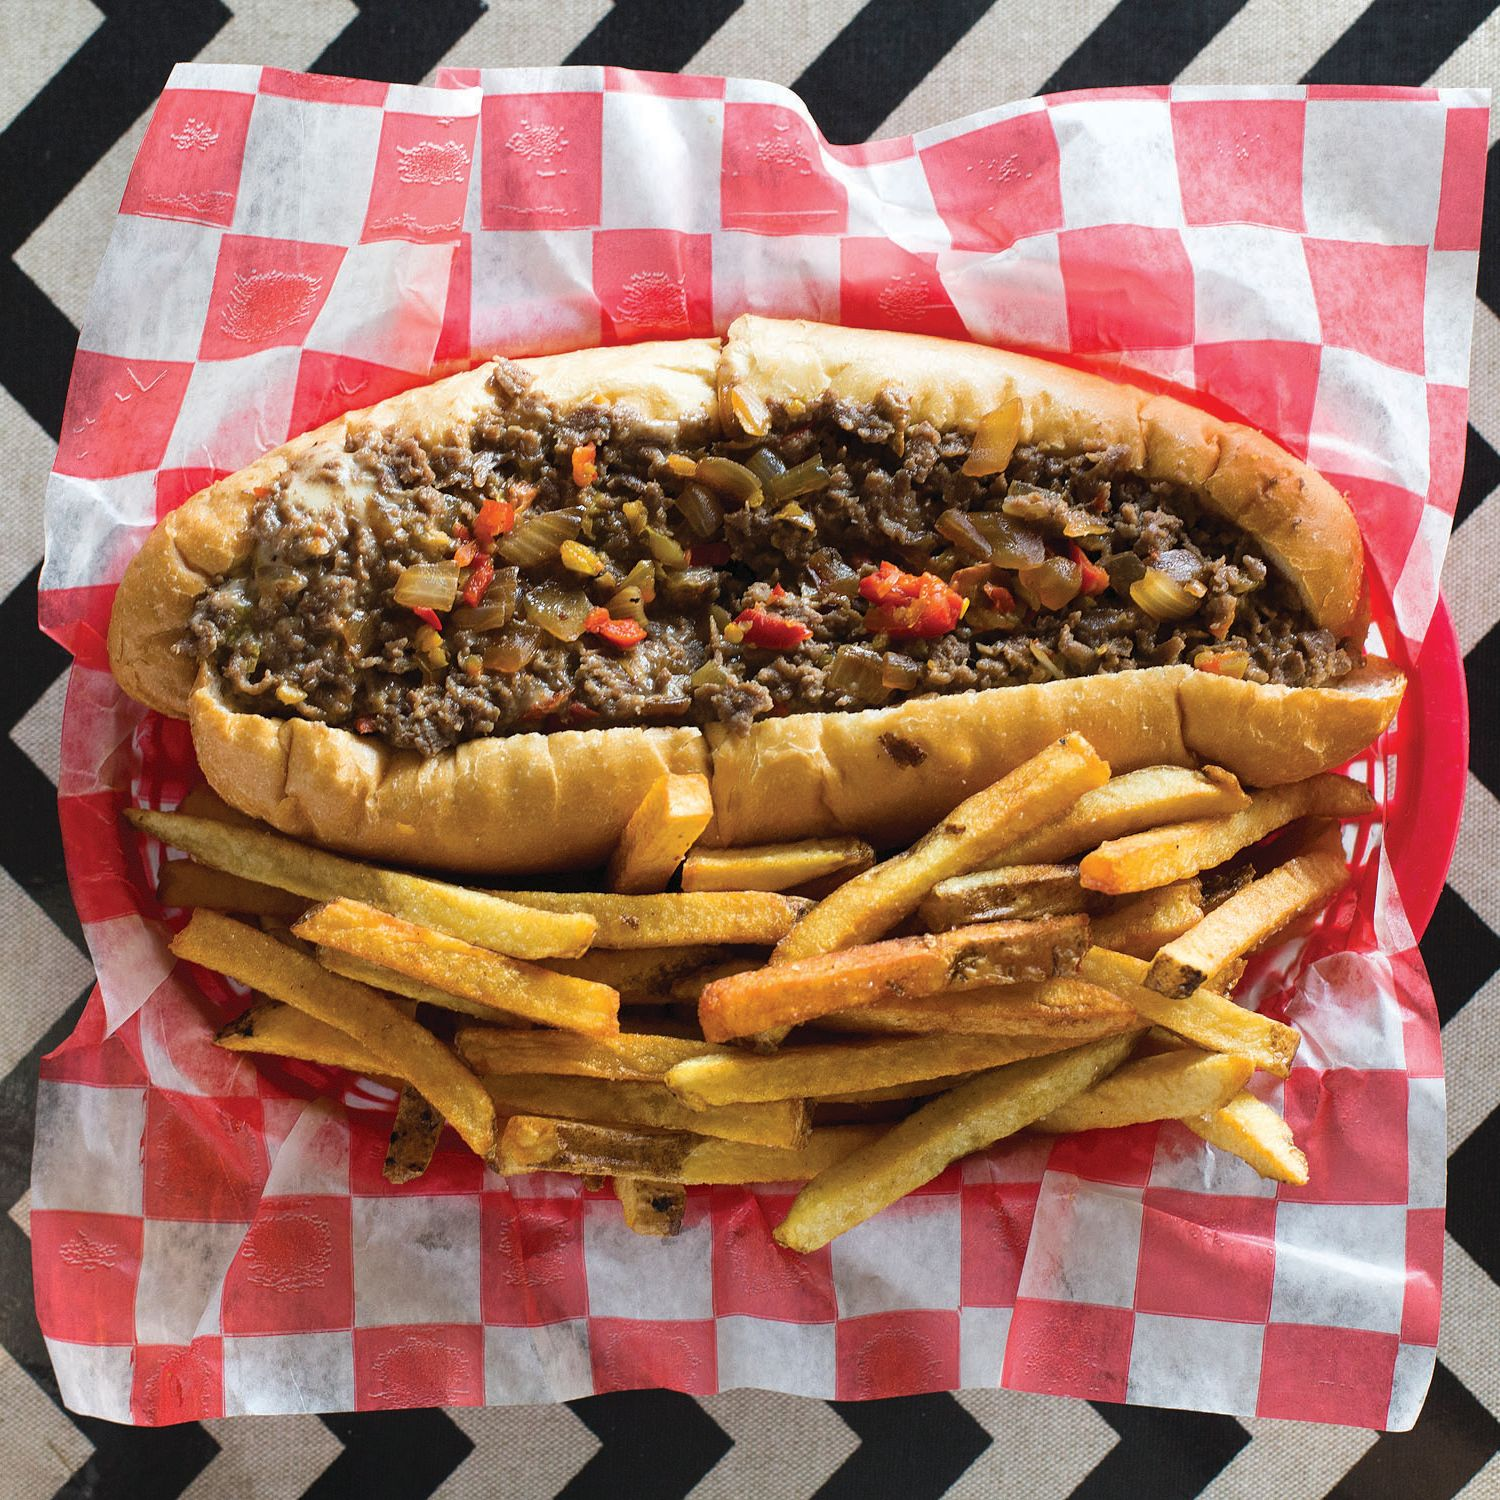 Cheesesteak vq1pab